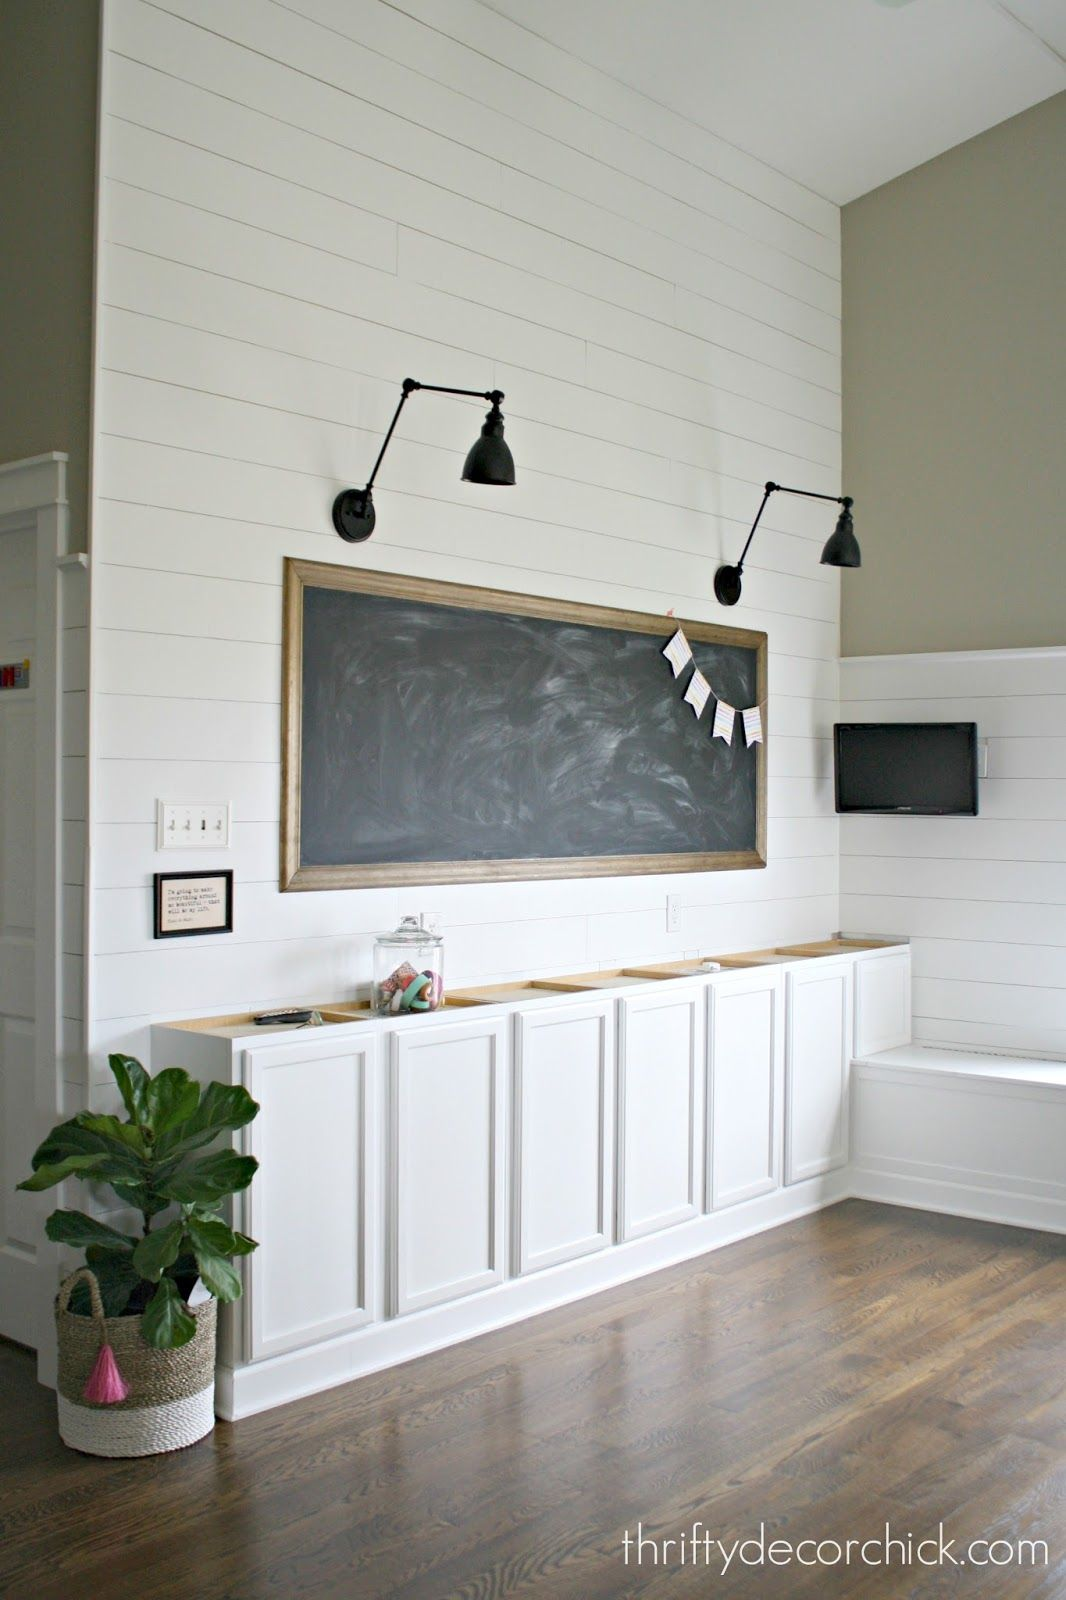 How to make a giant DIY chalkboard | Diy chalkboard, Chalkboards and ...